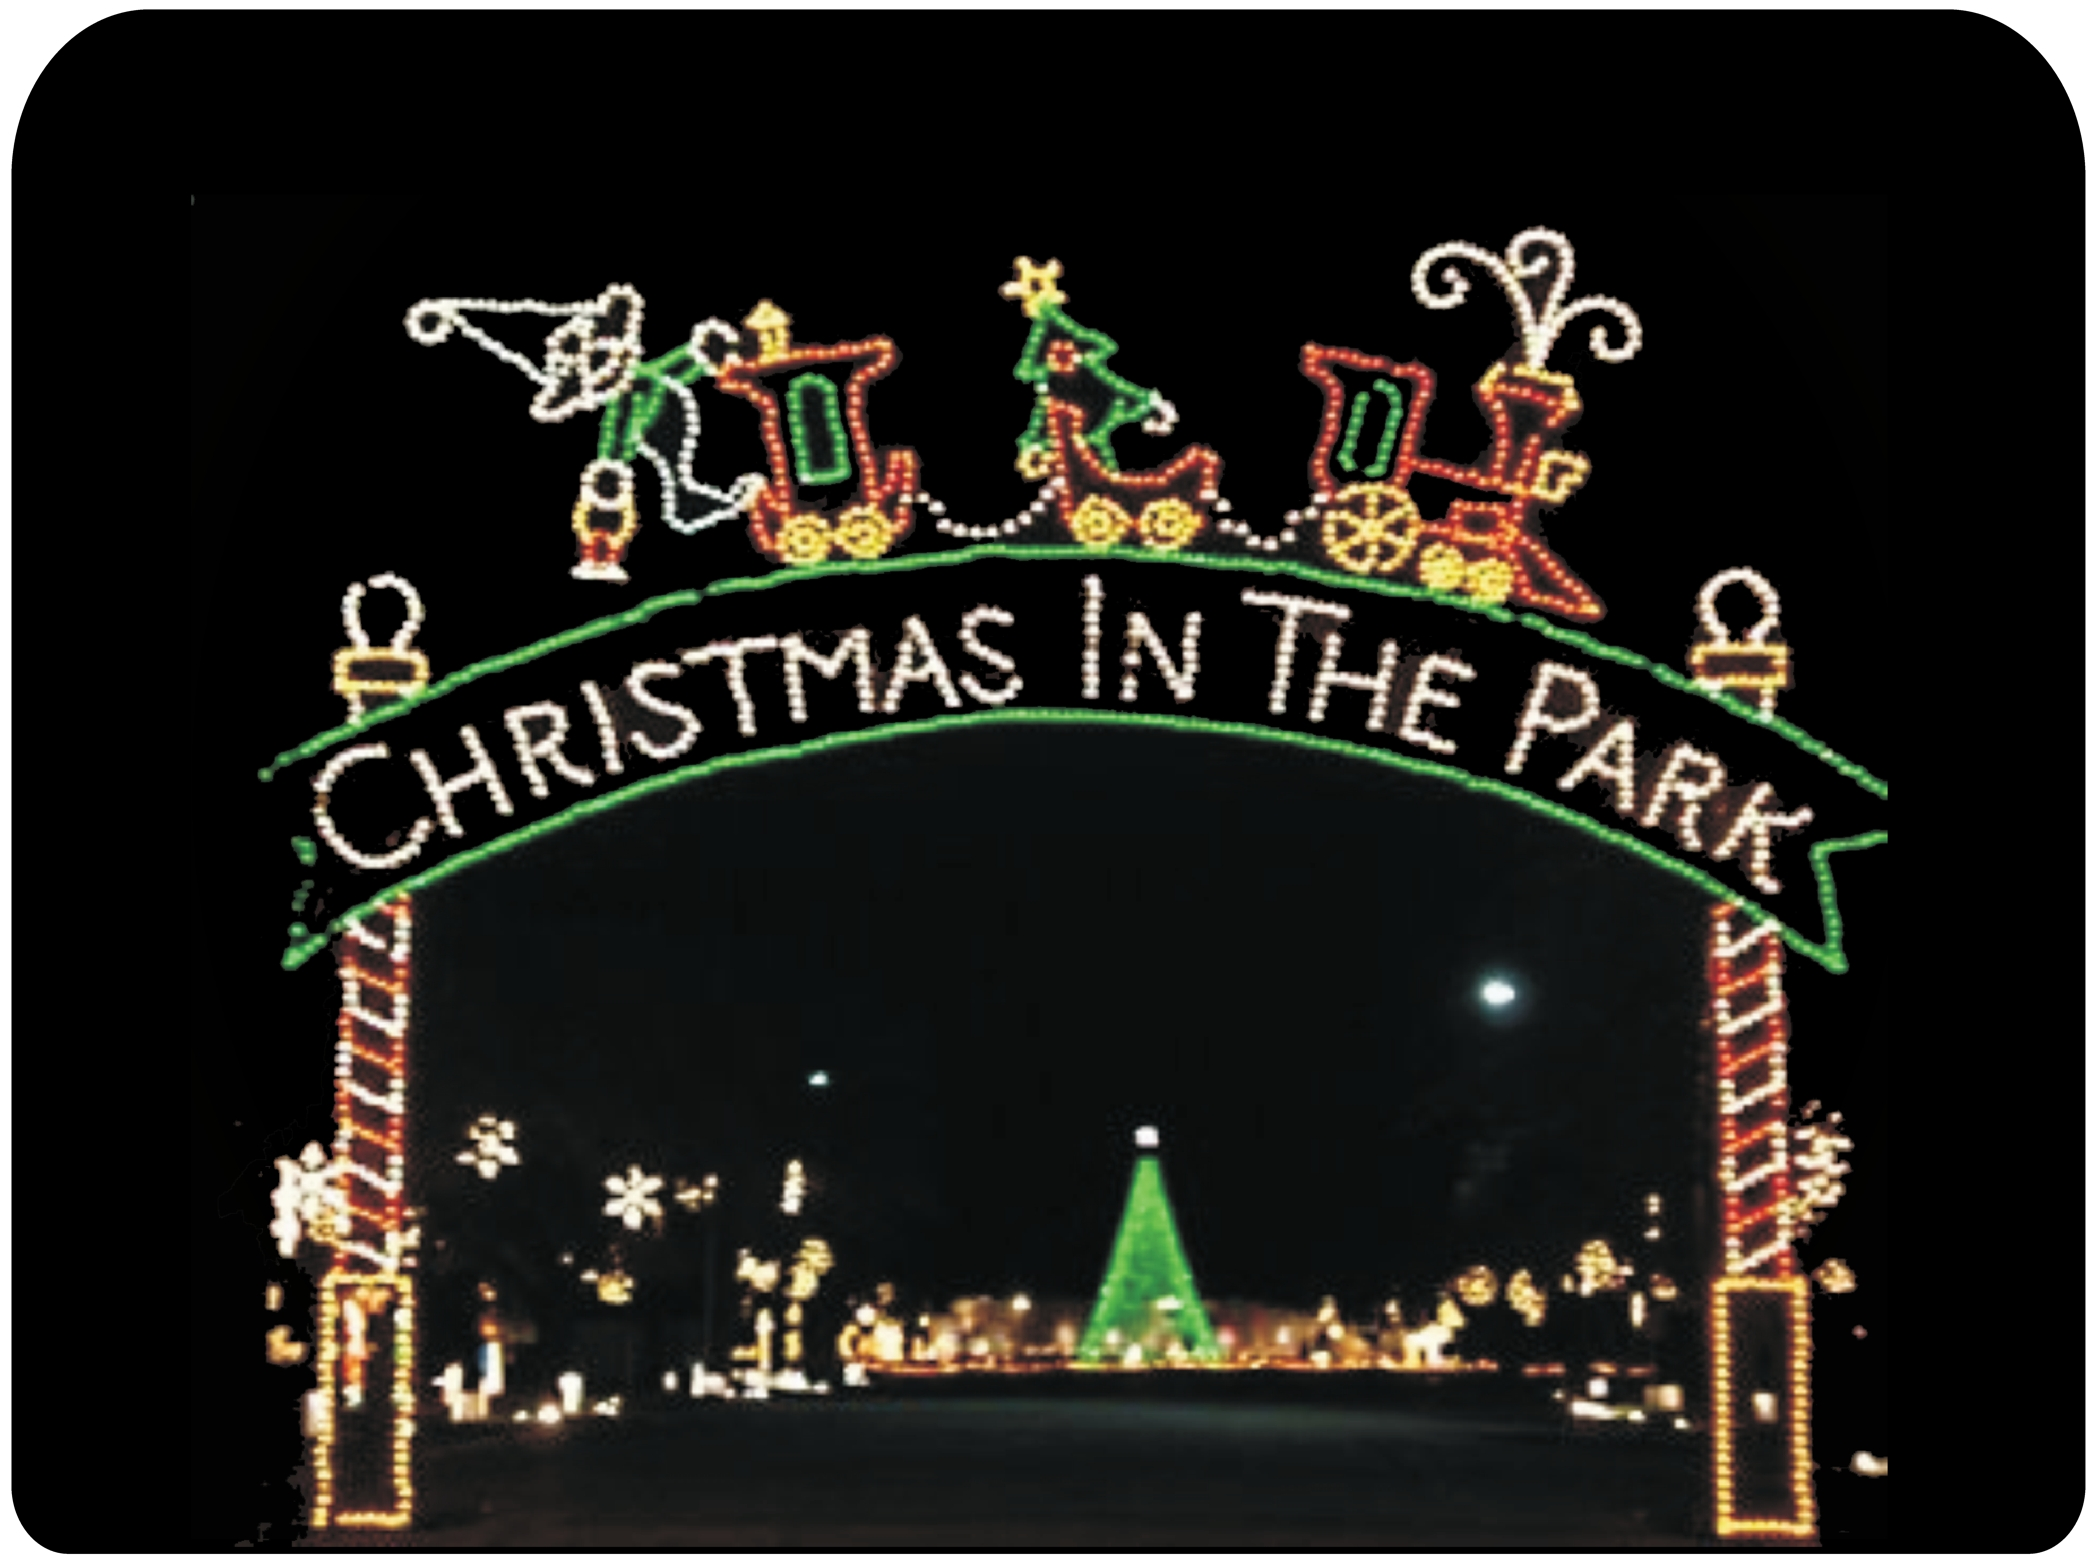 Christmas 20in 20the 20park 20  20cuero